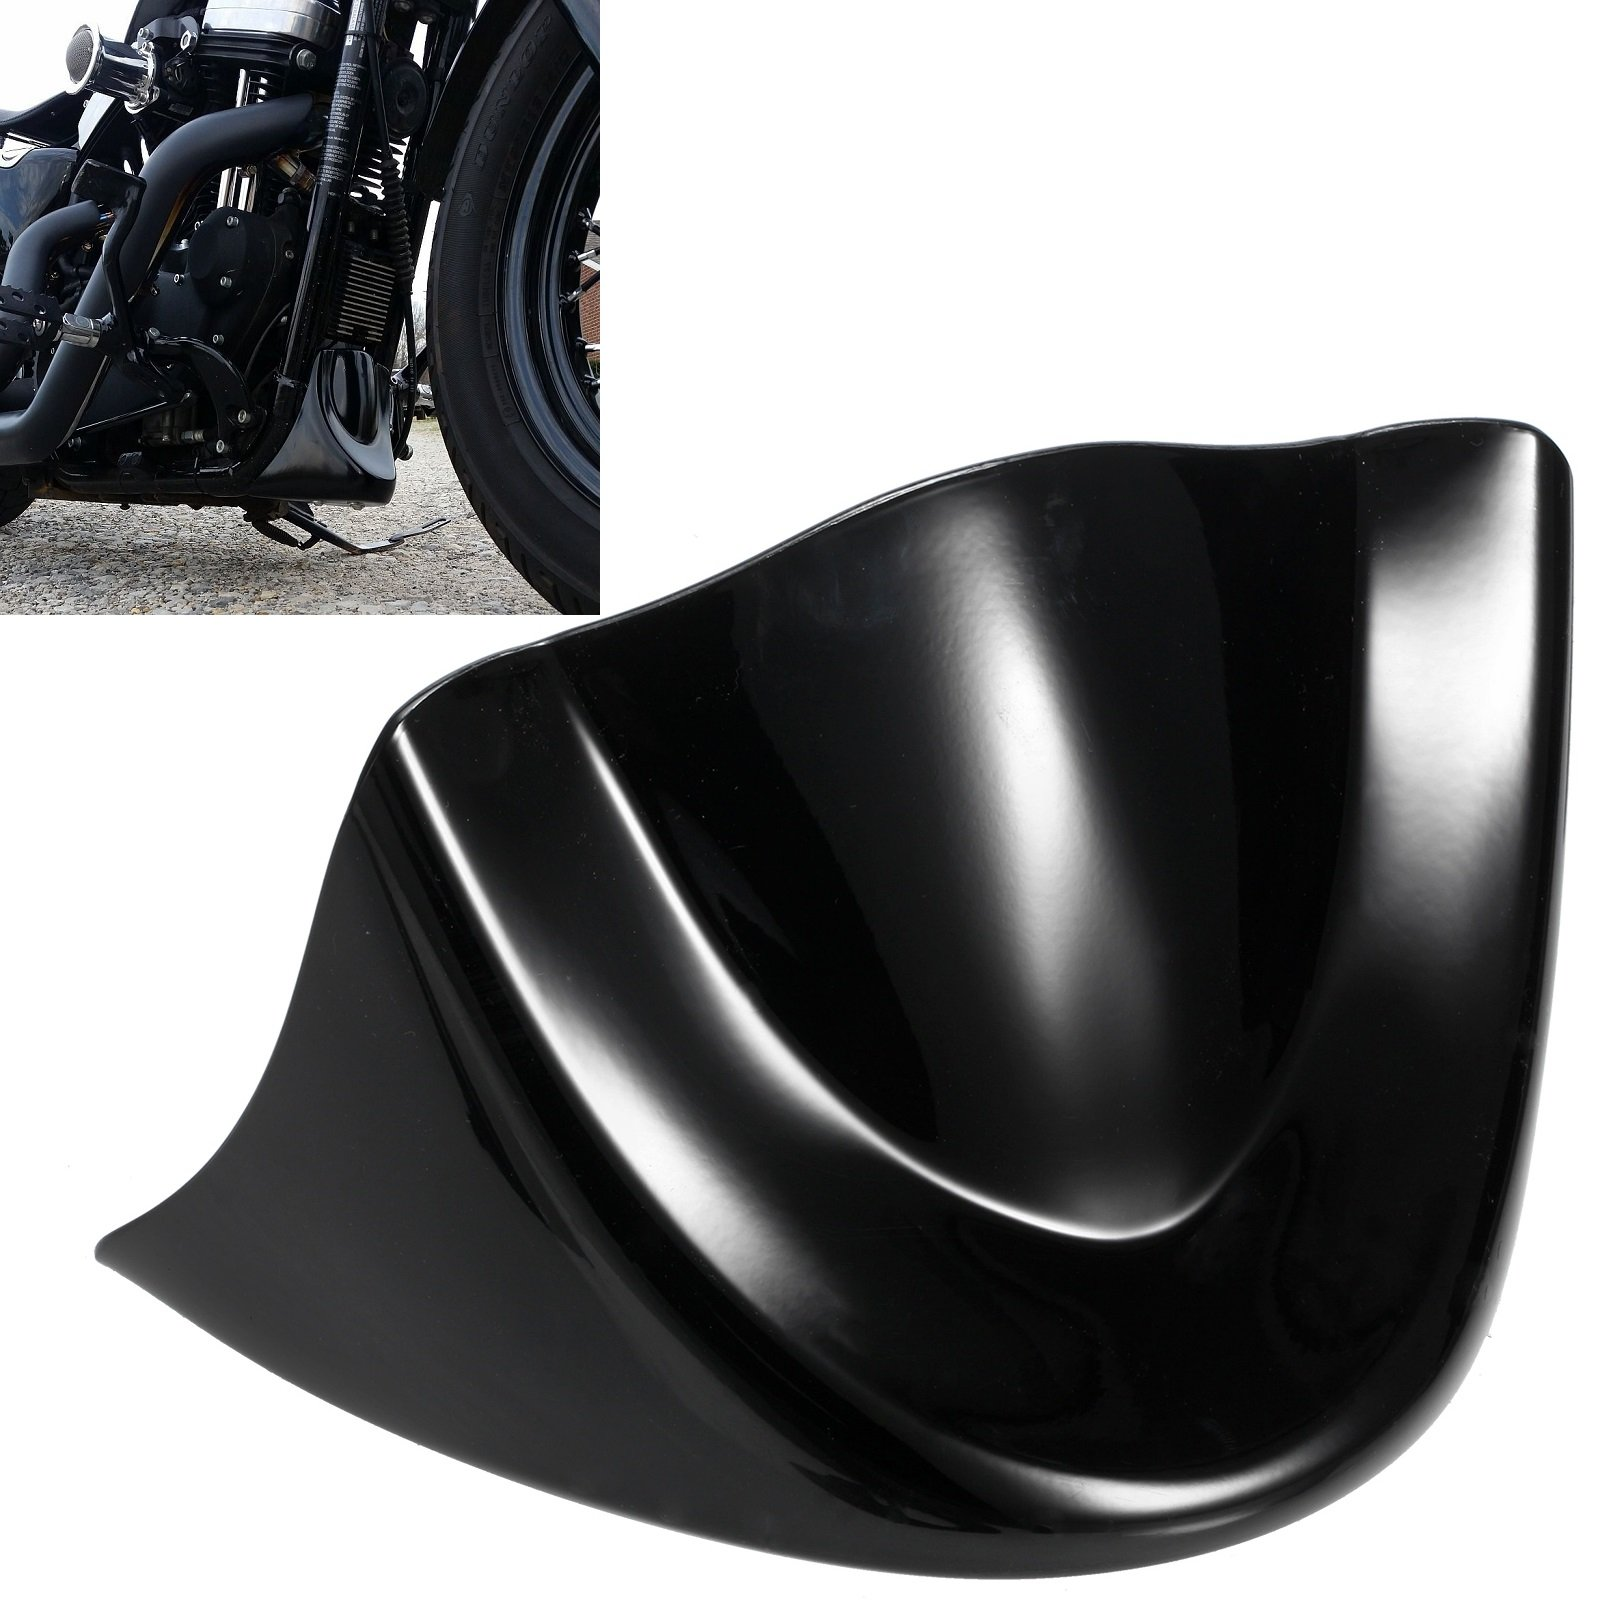 PBYMT Front Chin Spoiler Air Dam Fairing Windshield Mudguard Cover with Metal Bracket Compatible for Harley Davidson Dyna Fat Bob Street Bob Super Wide Glide 2006-2017 Gloss Black